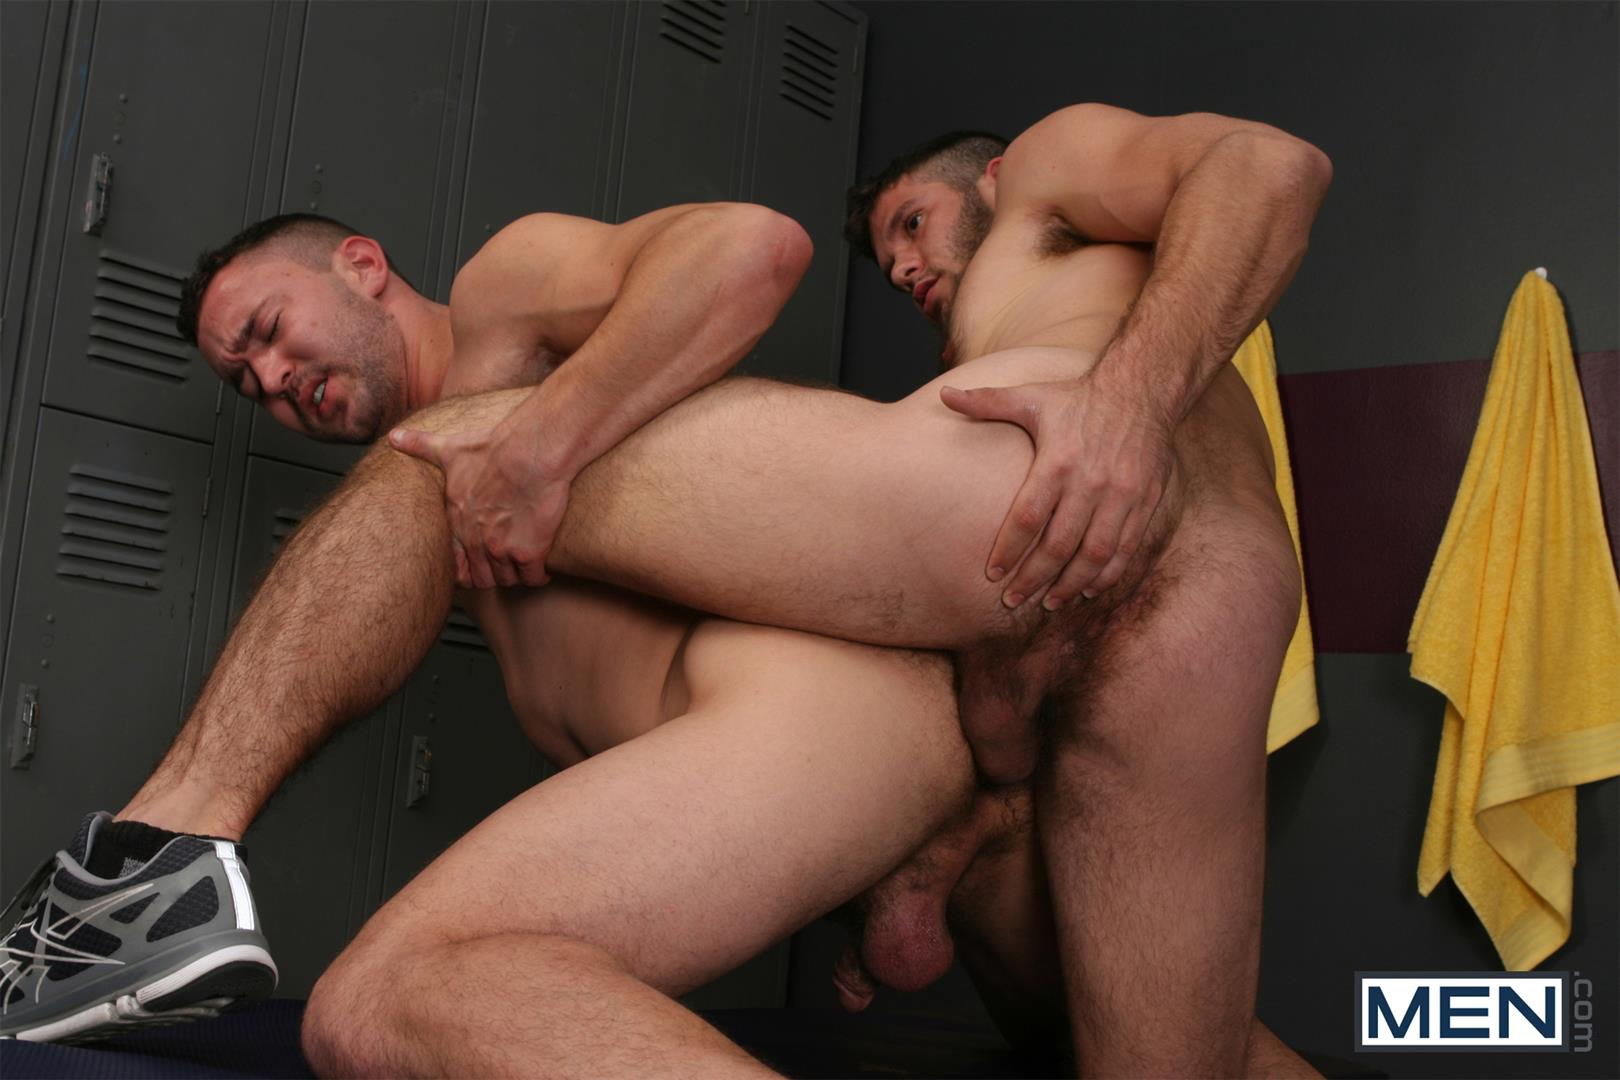 Men Drill My Hole Colt Rivers and Jimmy Fanz Muscle Jocks Fucking In The Locker Room Amateur Gay Porn 19 Hairy Ass Muscle Jocks Fucking In The Locker Room